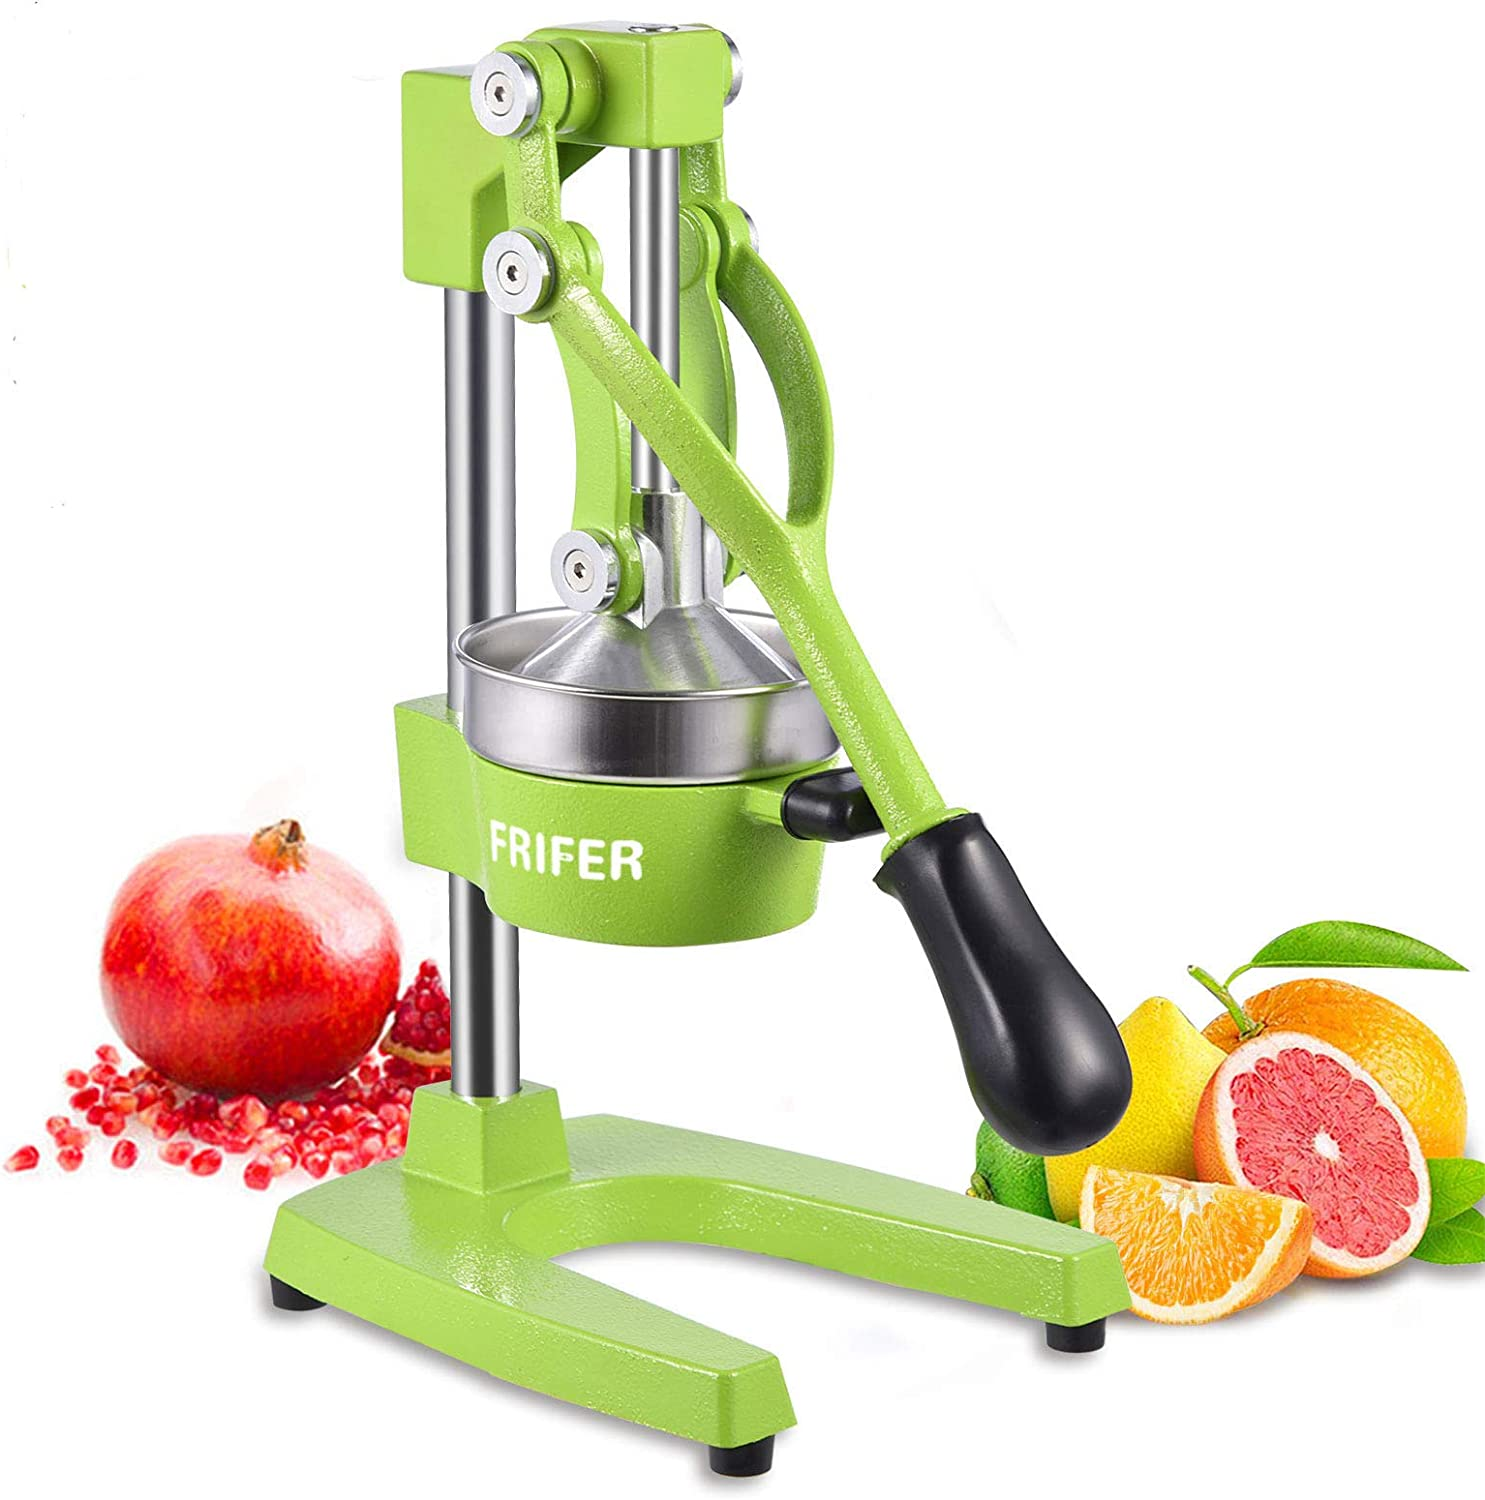 Frifer Manual Citrus Juicer Hand Press,Commercial Orange Lemon Juicer Squeezer Heavy Duty Cast Iron Fuselage and Base,Stainless Steel Funnel&filter screen,Durable and Easy to Clean(Light Green)